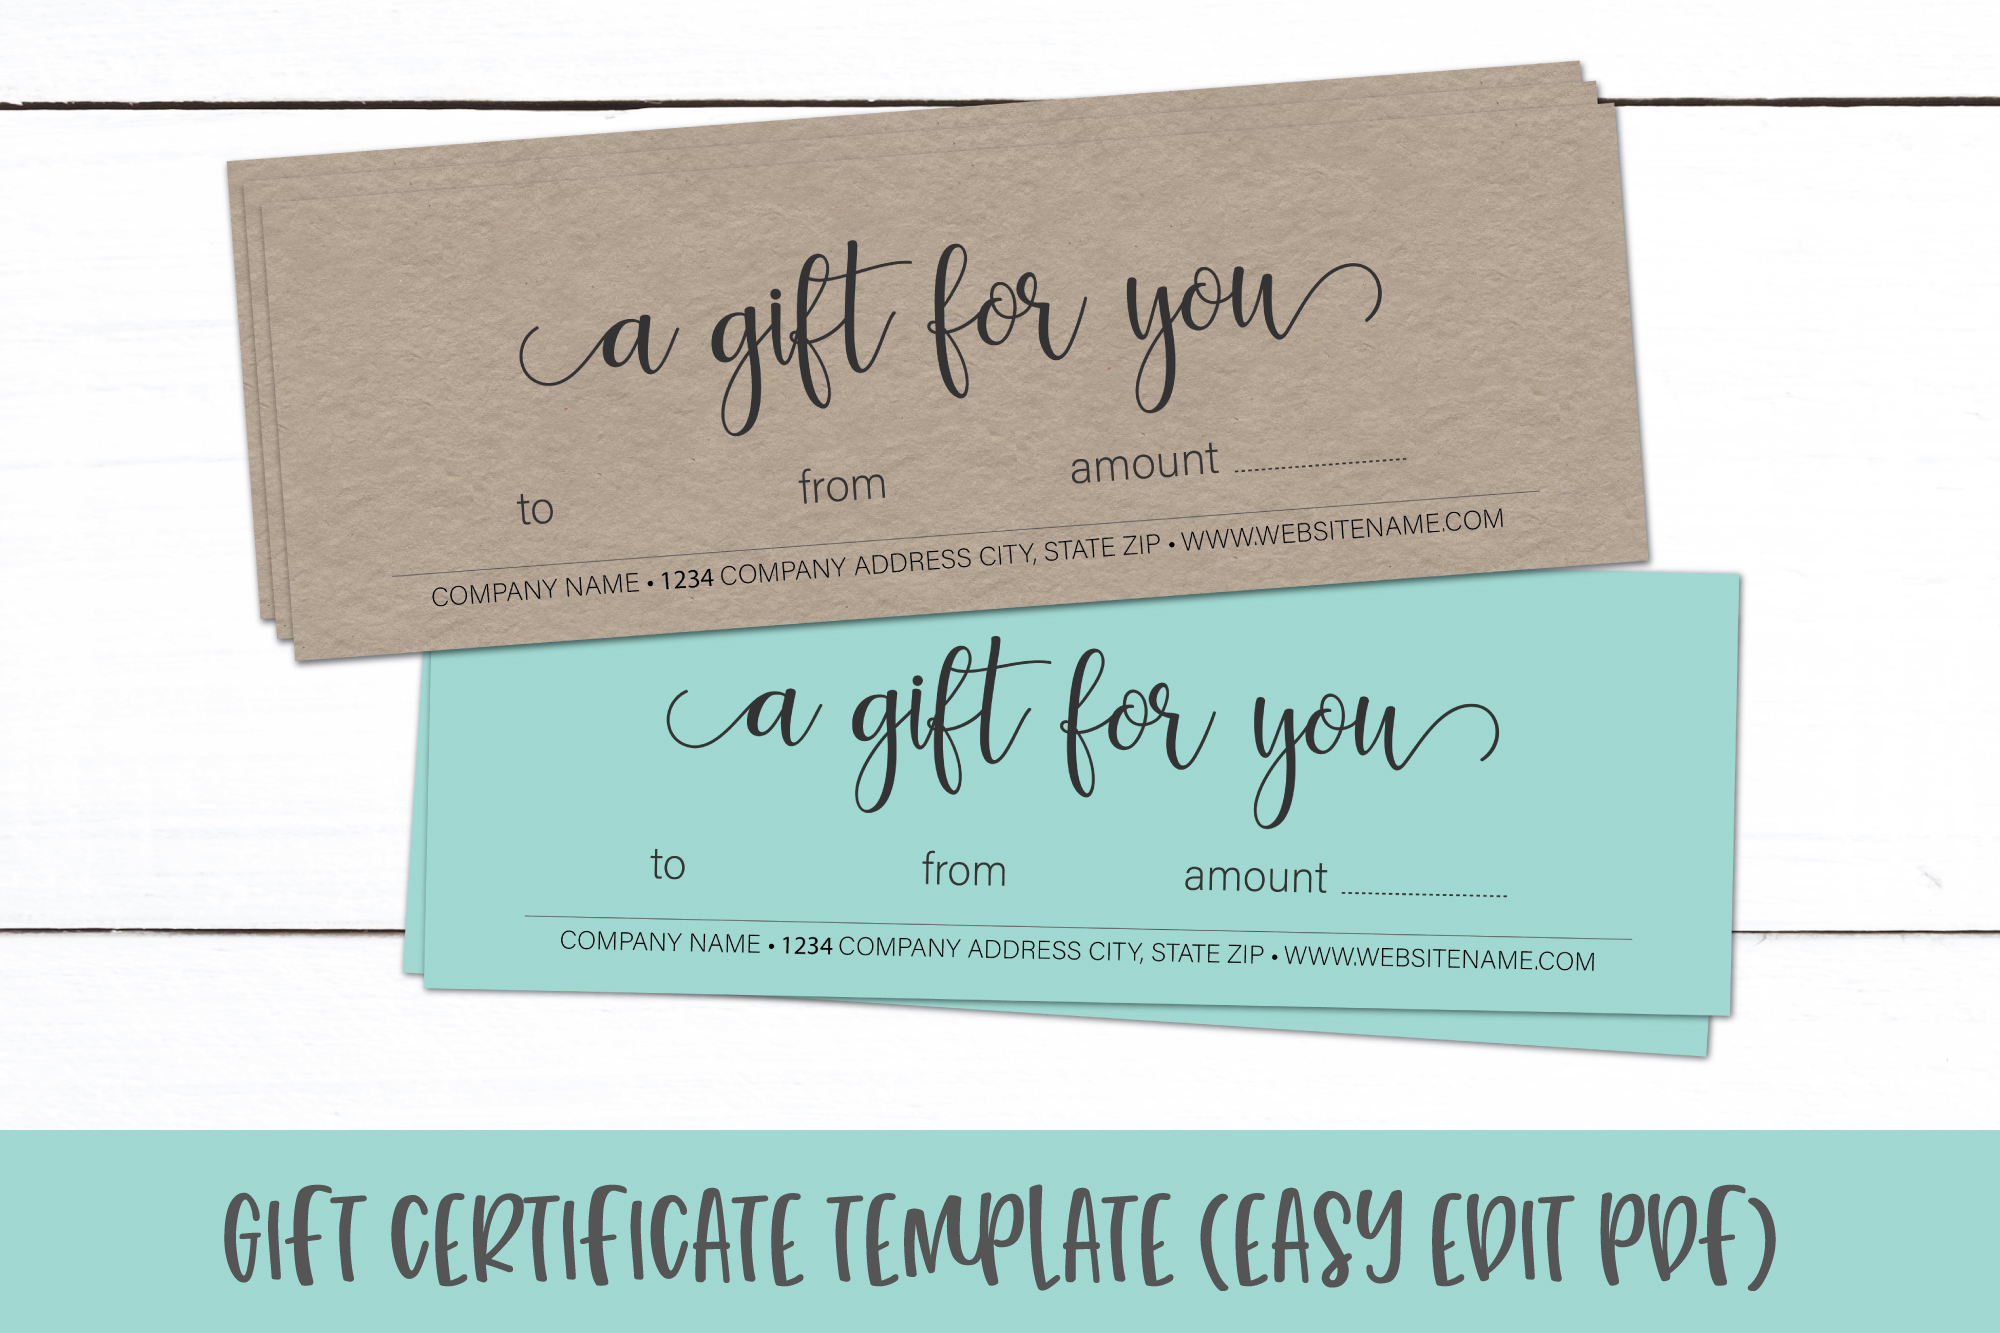 Gift Certificate Template | Editable Gift Card PDF (326553 ...